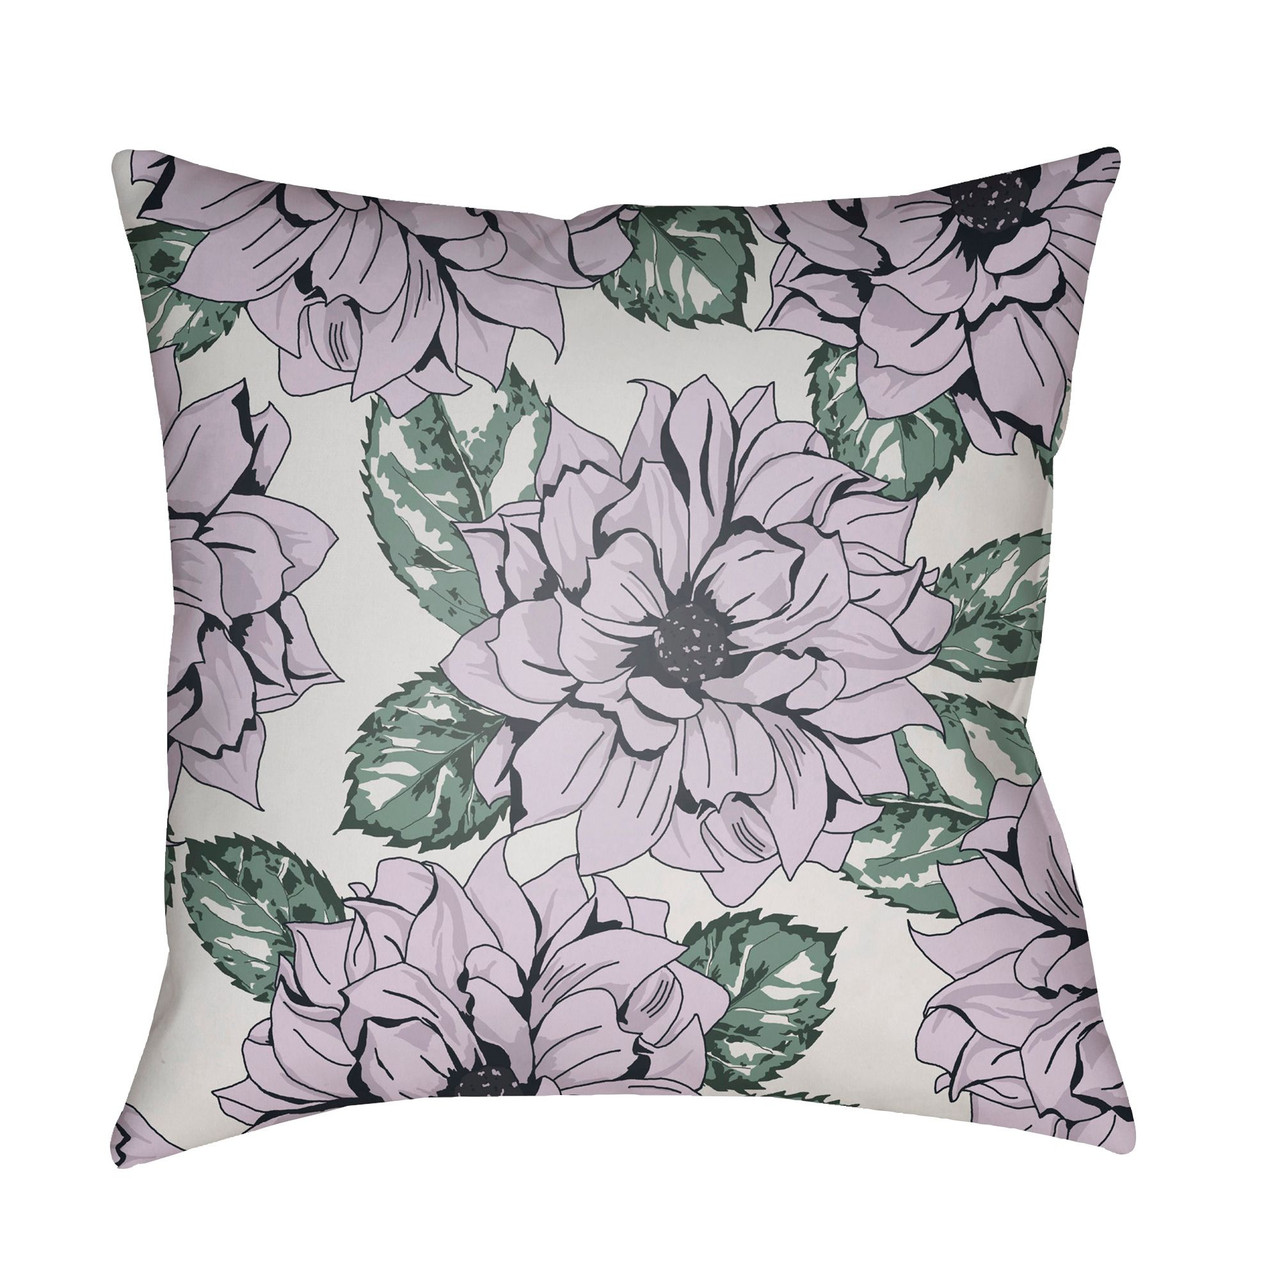 22 Purple And Green Floral Square Outdoor Throw Pillow Cover 33430064